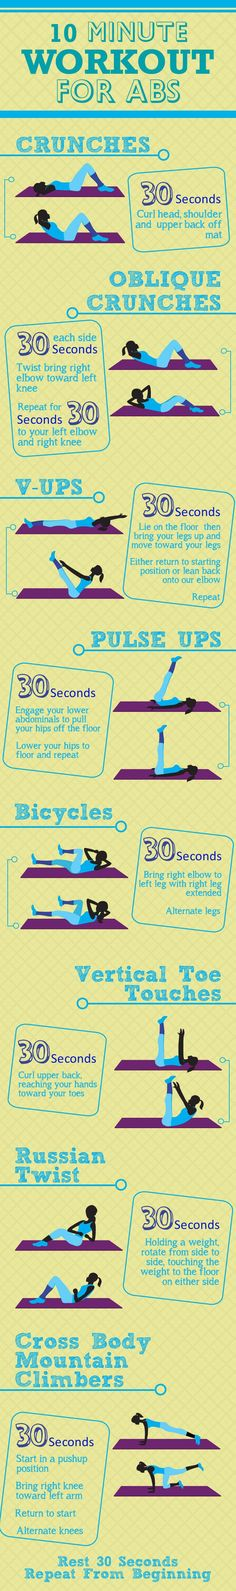 Get some extra abdominal work! No weights needed for this workout, so no excuses!